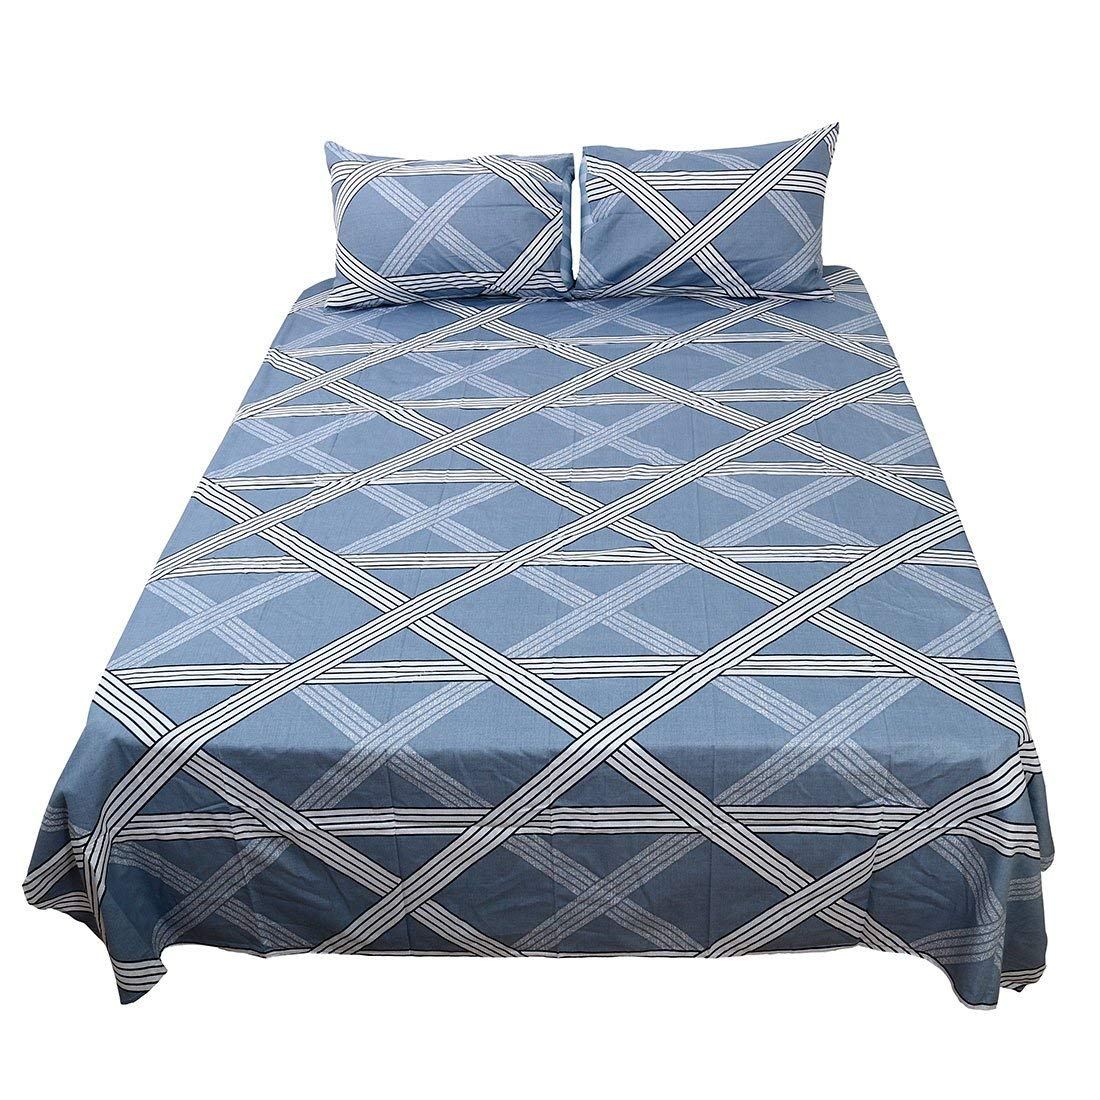 Twin Size, 5   Bed Sheets Set,100% Cotton 4-Piece Checkered Bedding Sets Fitted Sheet Flat Sheet 2 Pillowcase  5 Twin